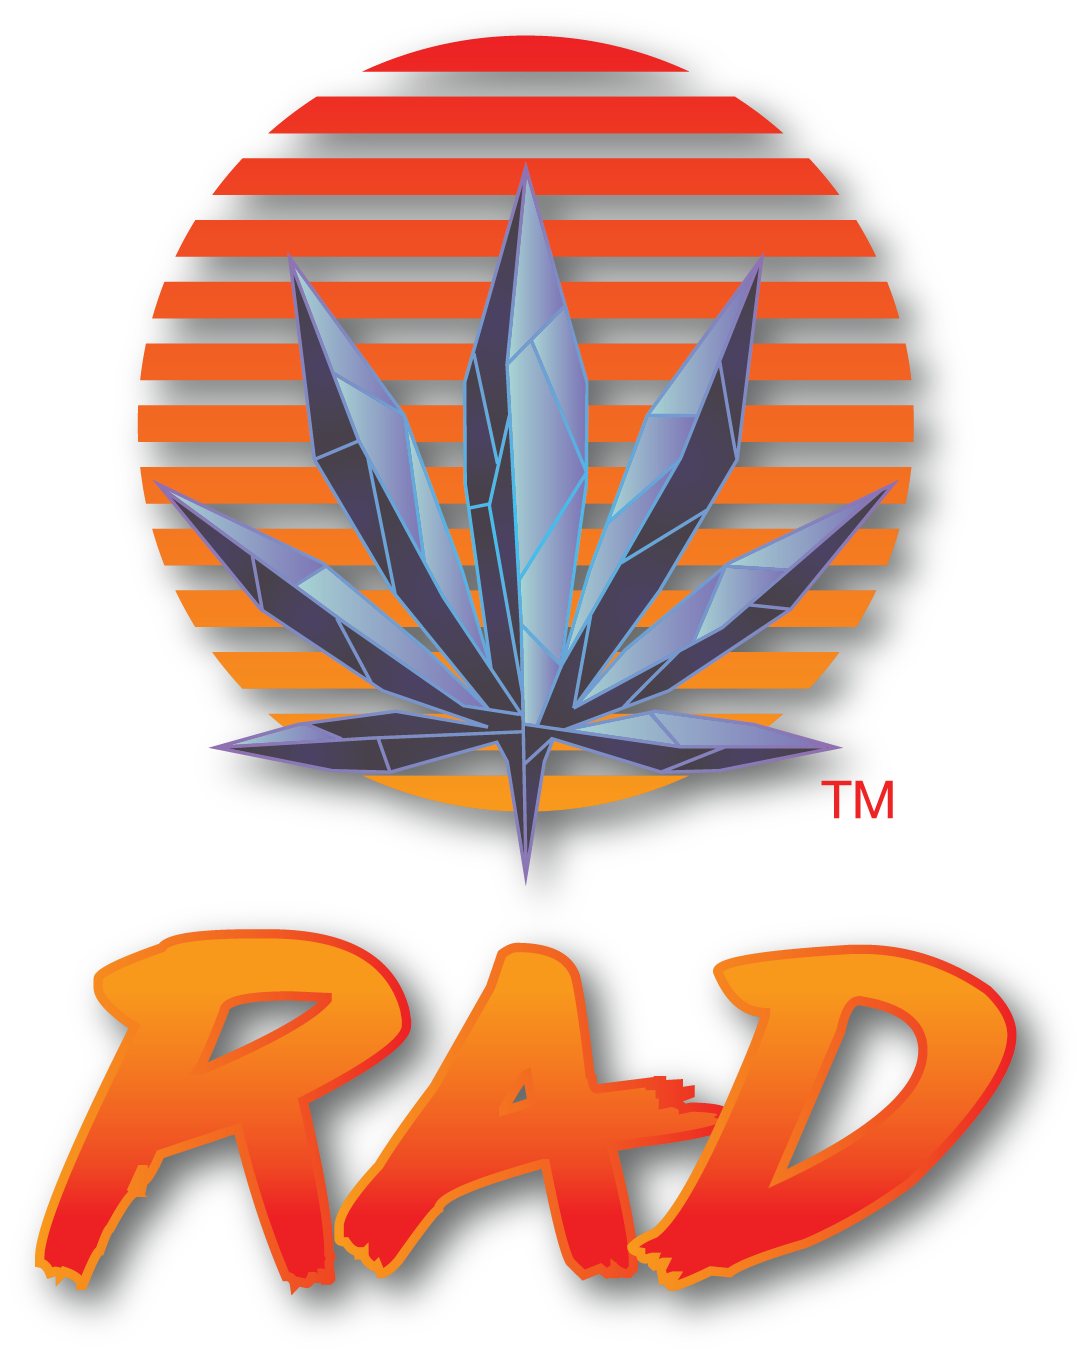 Rad Vapes